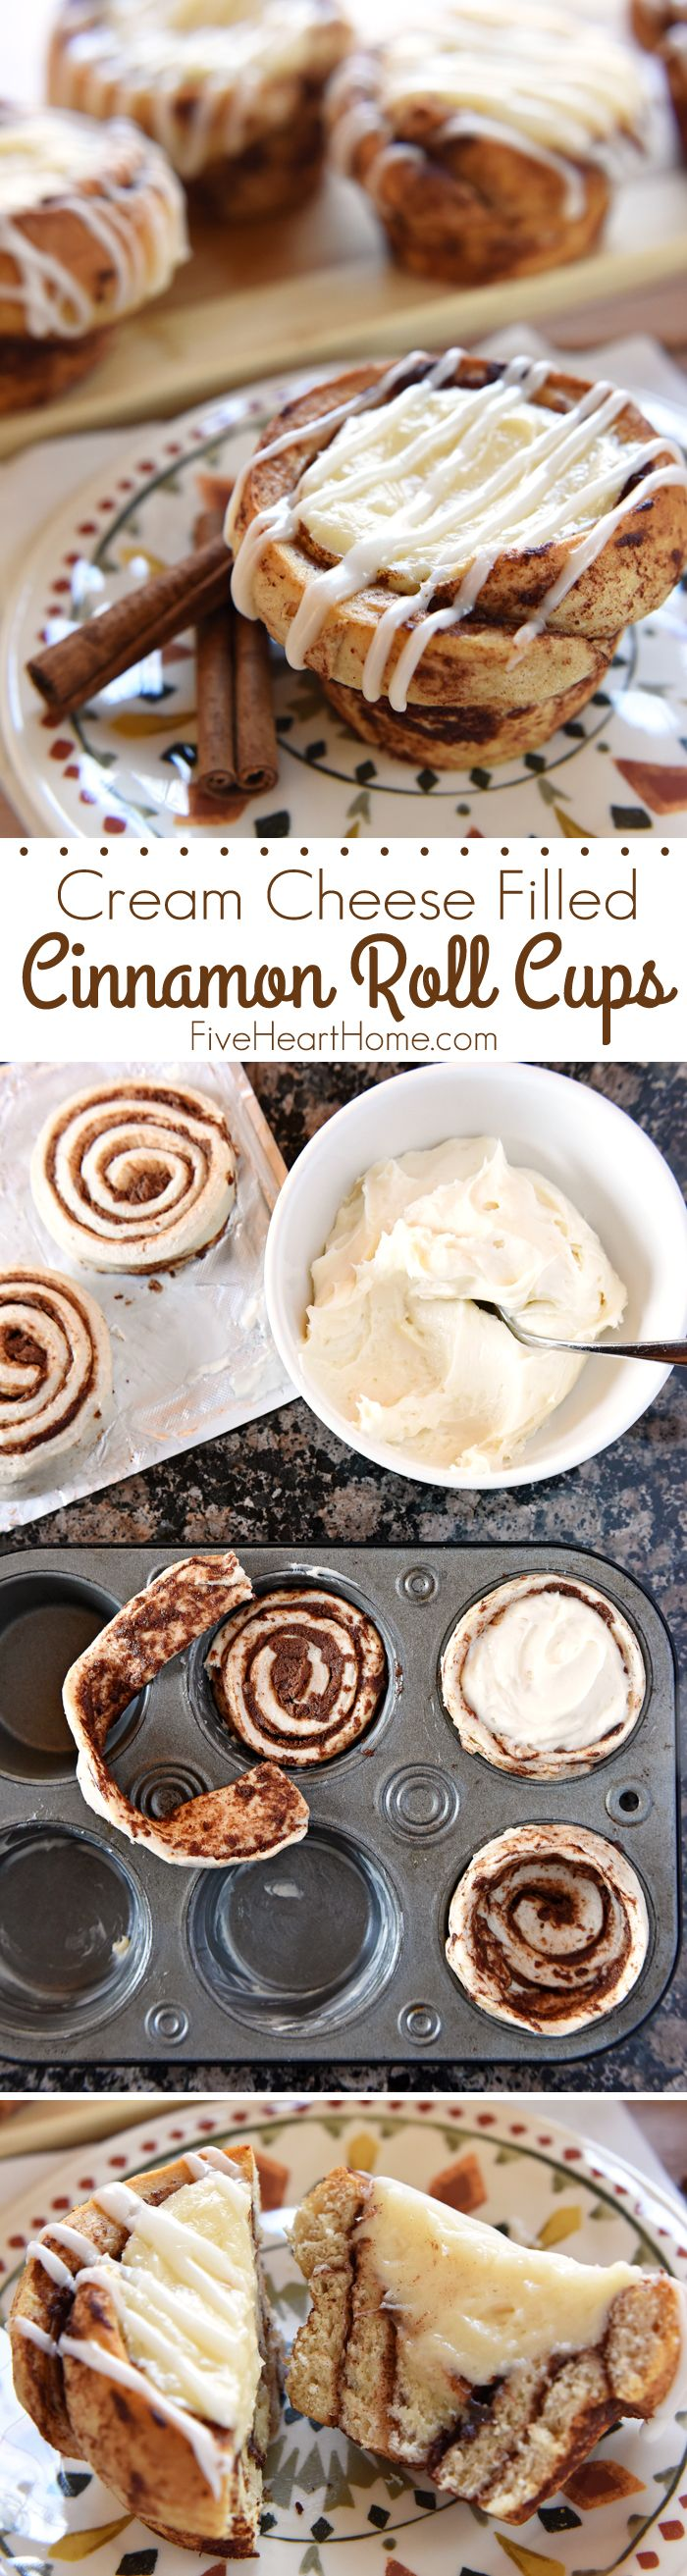 Cream Cheese Filled Cinnamon Roll Cups ~ fit refrigerated cinnamon rolls in a muffin pan, fill with sweetened cream cheese, bake until golden, and then drizzle with icing for a fun, easy, special breakfast treat! | FiveHeartHome.com